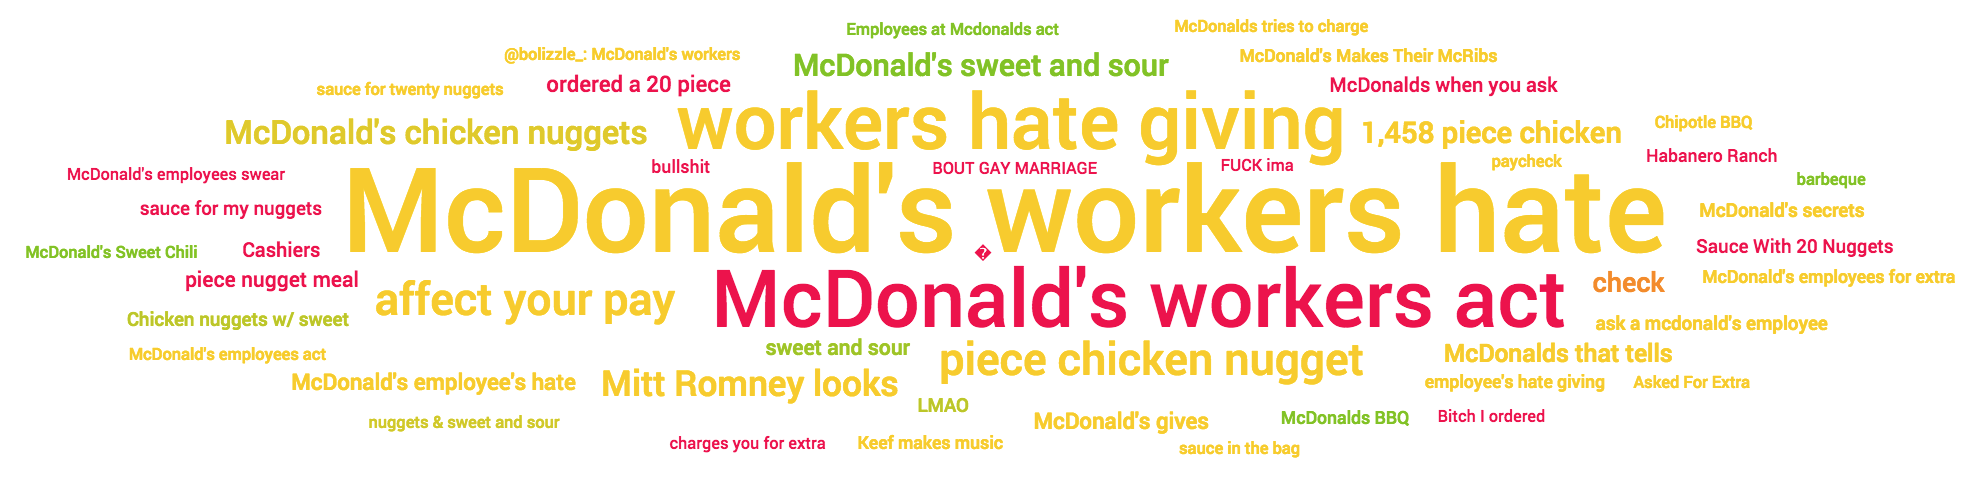 millennial topics about mcnuggets and sauce